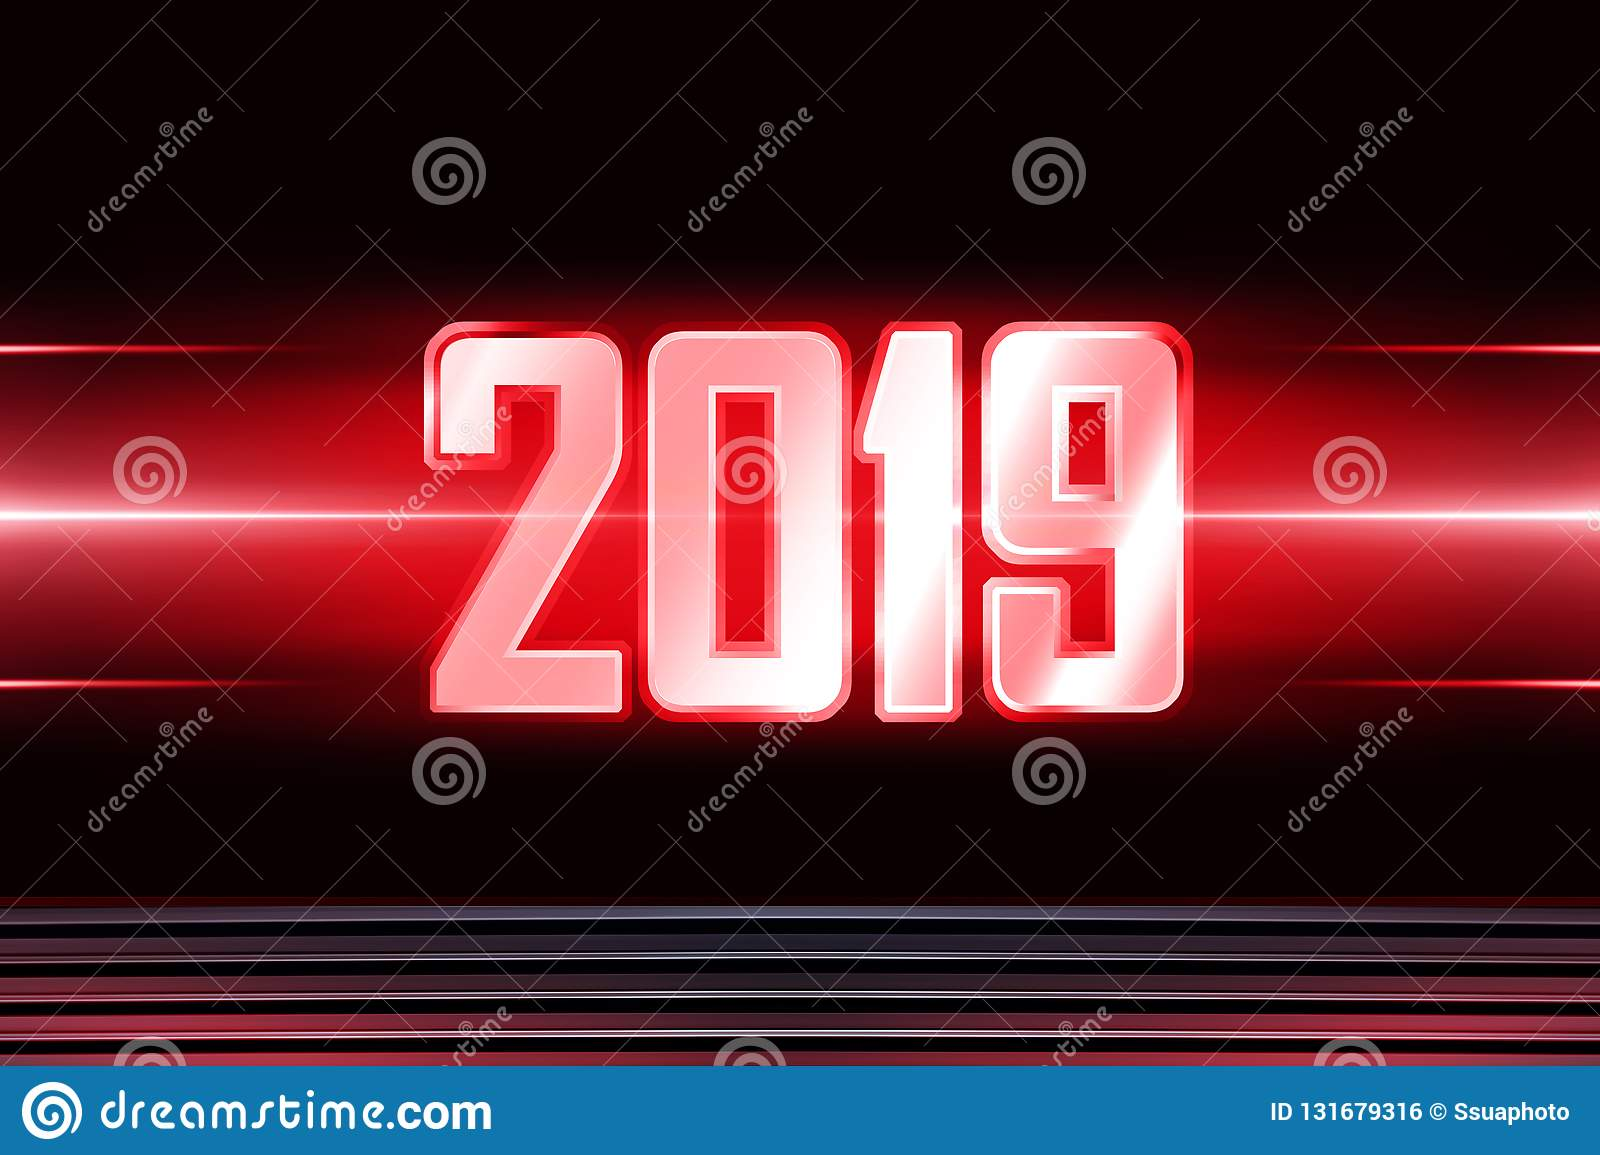 Background With Transparent Figures 2019 For New Year